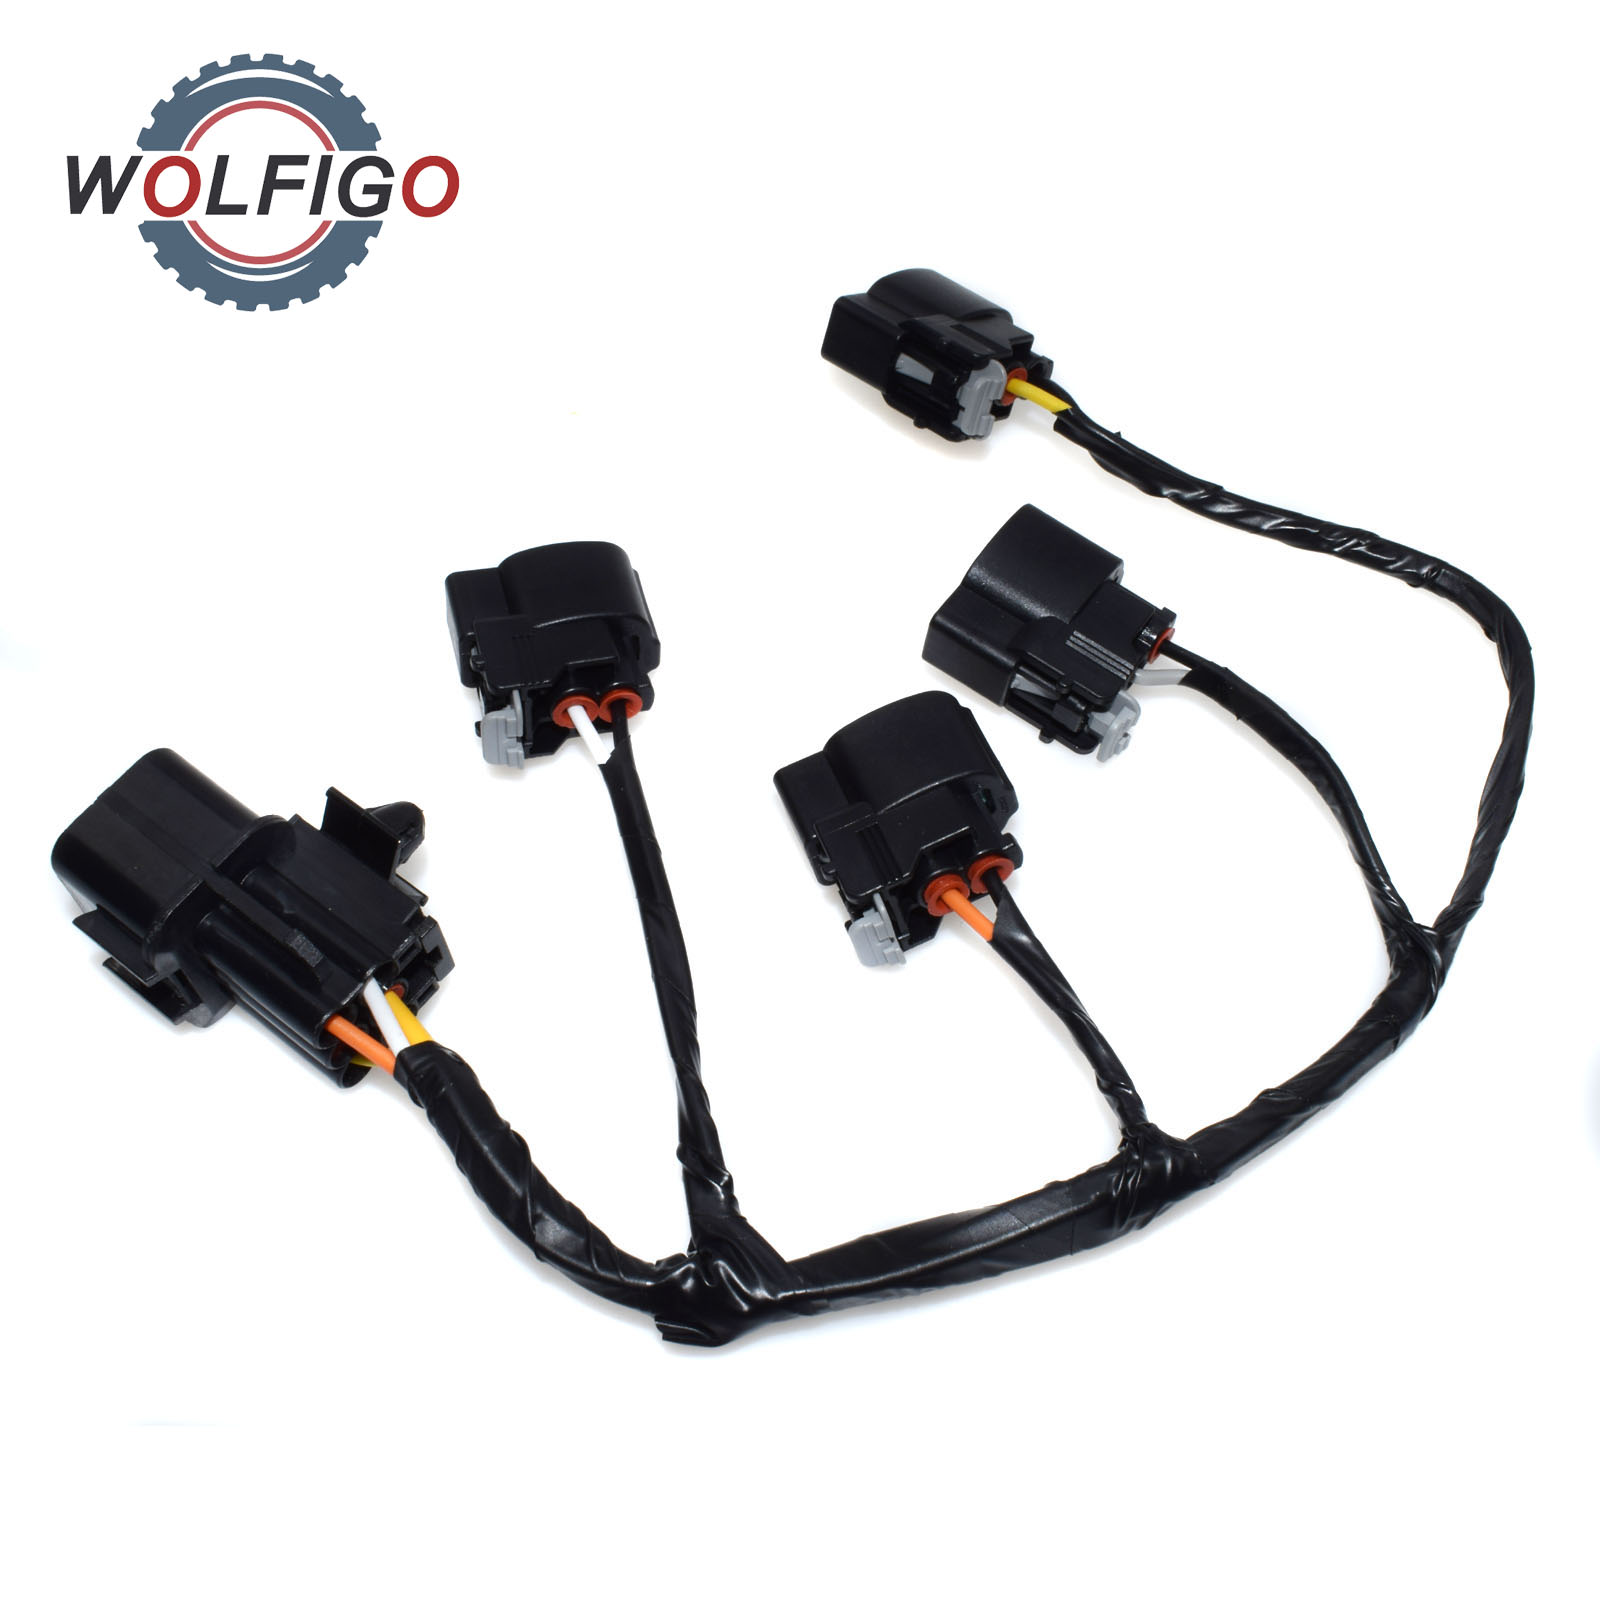 [DIAGRAM_0HG]  WOLFIGO New Ignition Coil Wire Harness for Hyundai Veloster Kia Rio Soul  273502B000 27350 2B000 27301 2B010| | - AliExpress | Ignition Coil Wiring Harness |  | www.aliexpress.com